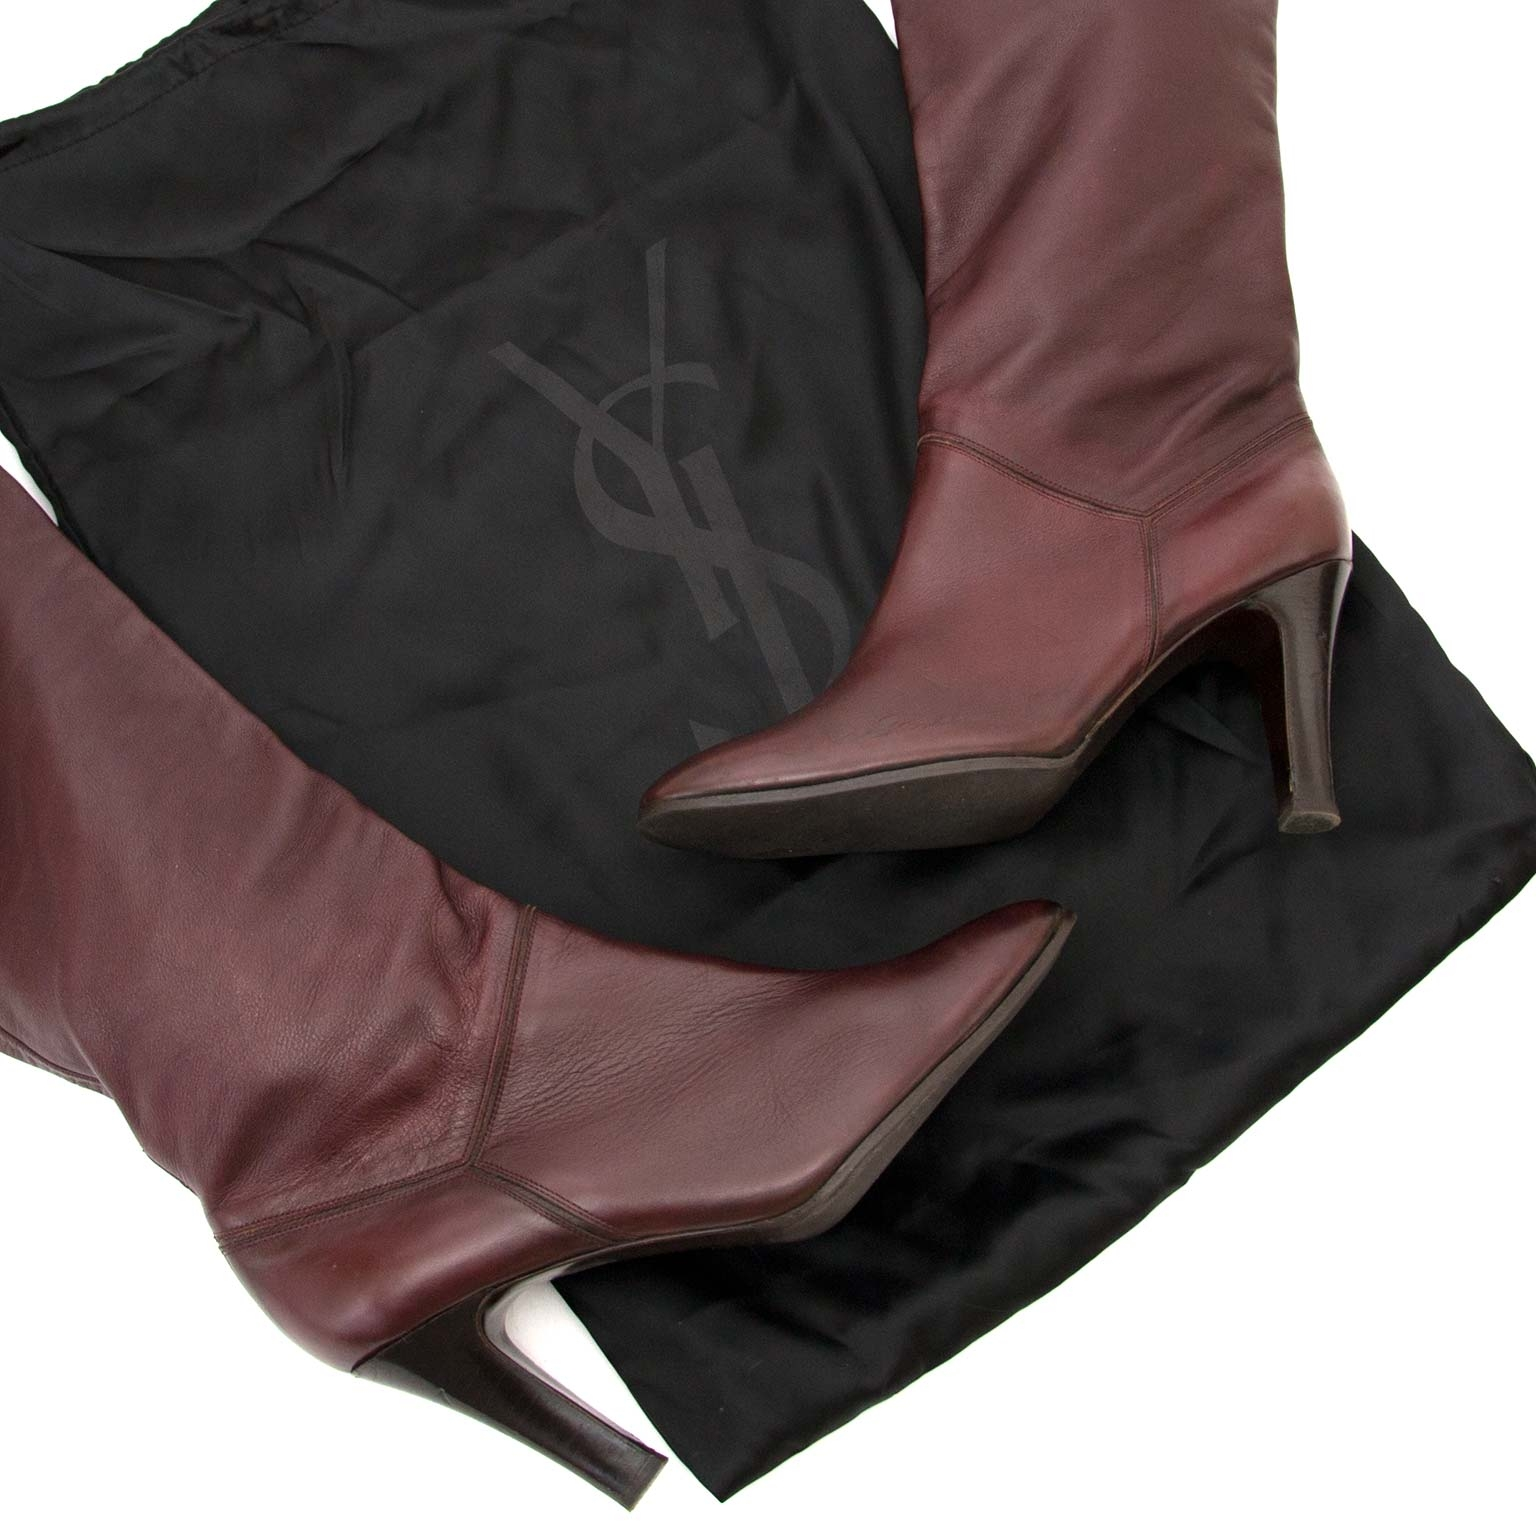 yves saint laurent bordeaux knee boots now for sale at labellov vintage fashion webshop belgium